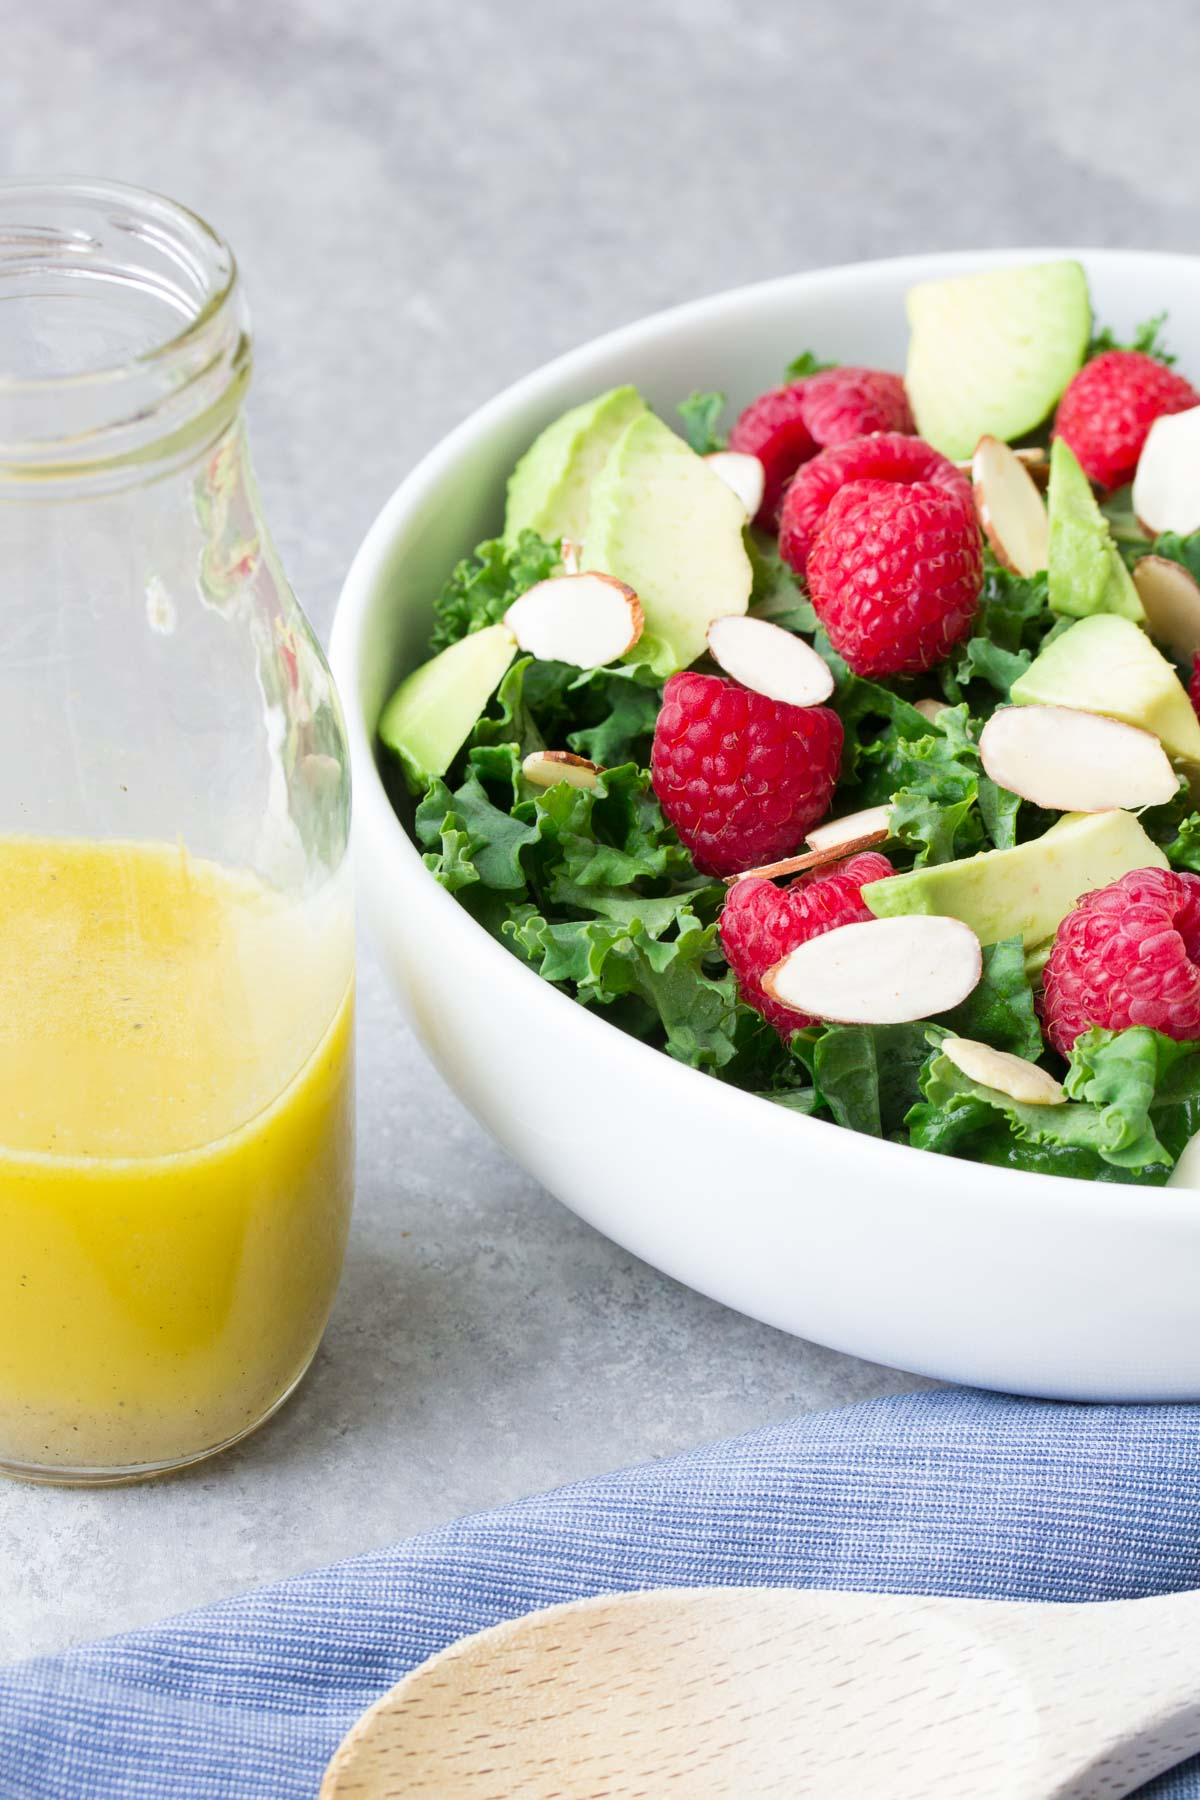 Quick, easy and healthy Avocado Kale Salad with Honey Lemon Dressing. With almonds and raspberries, tossed in a bright and tangy citrus dressing!